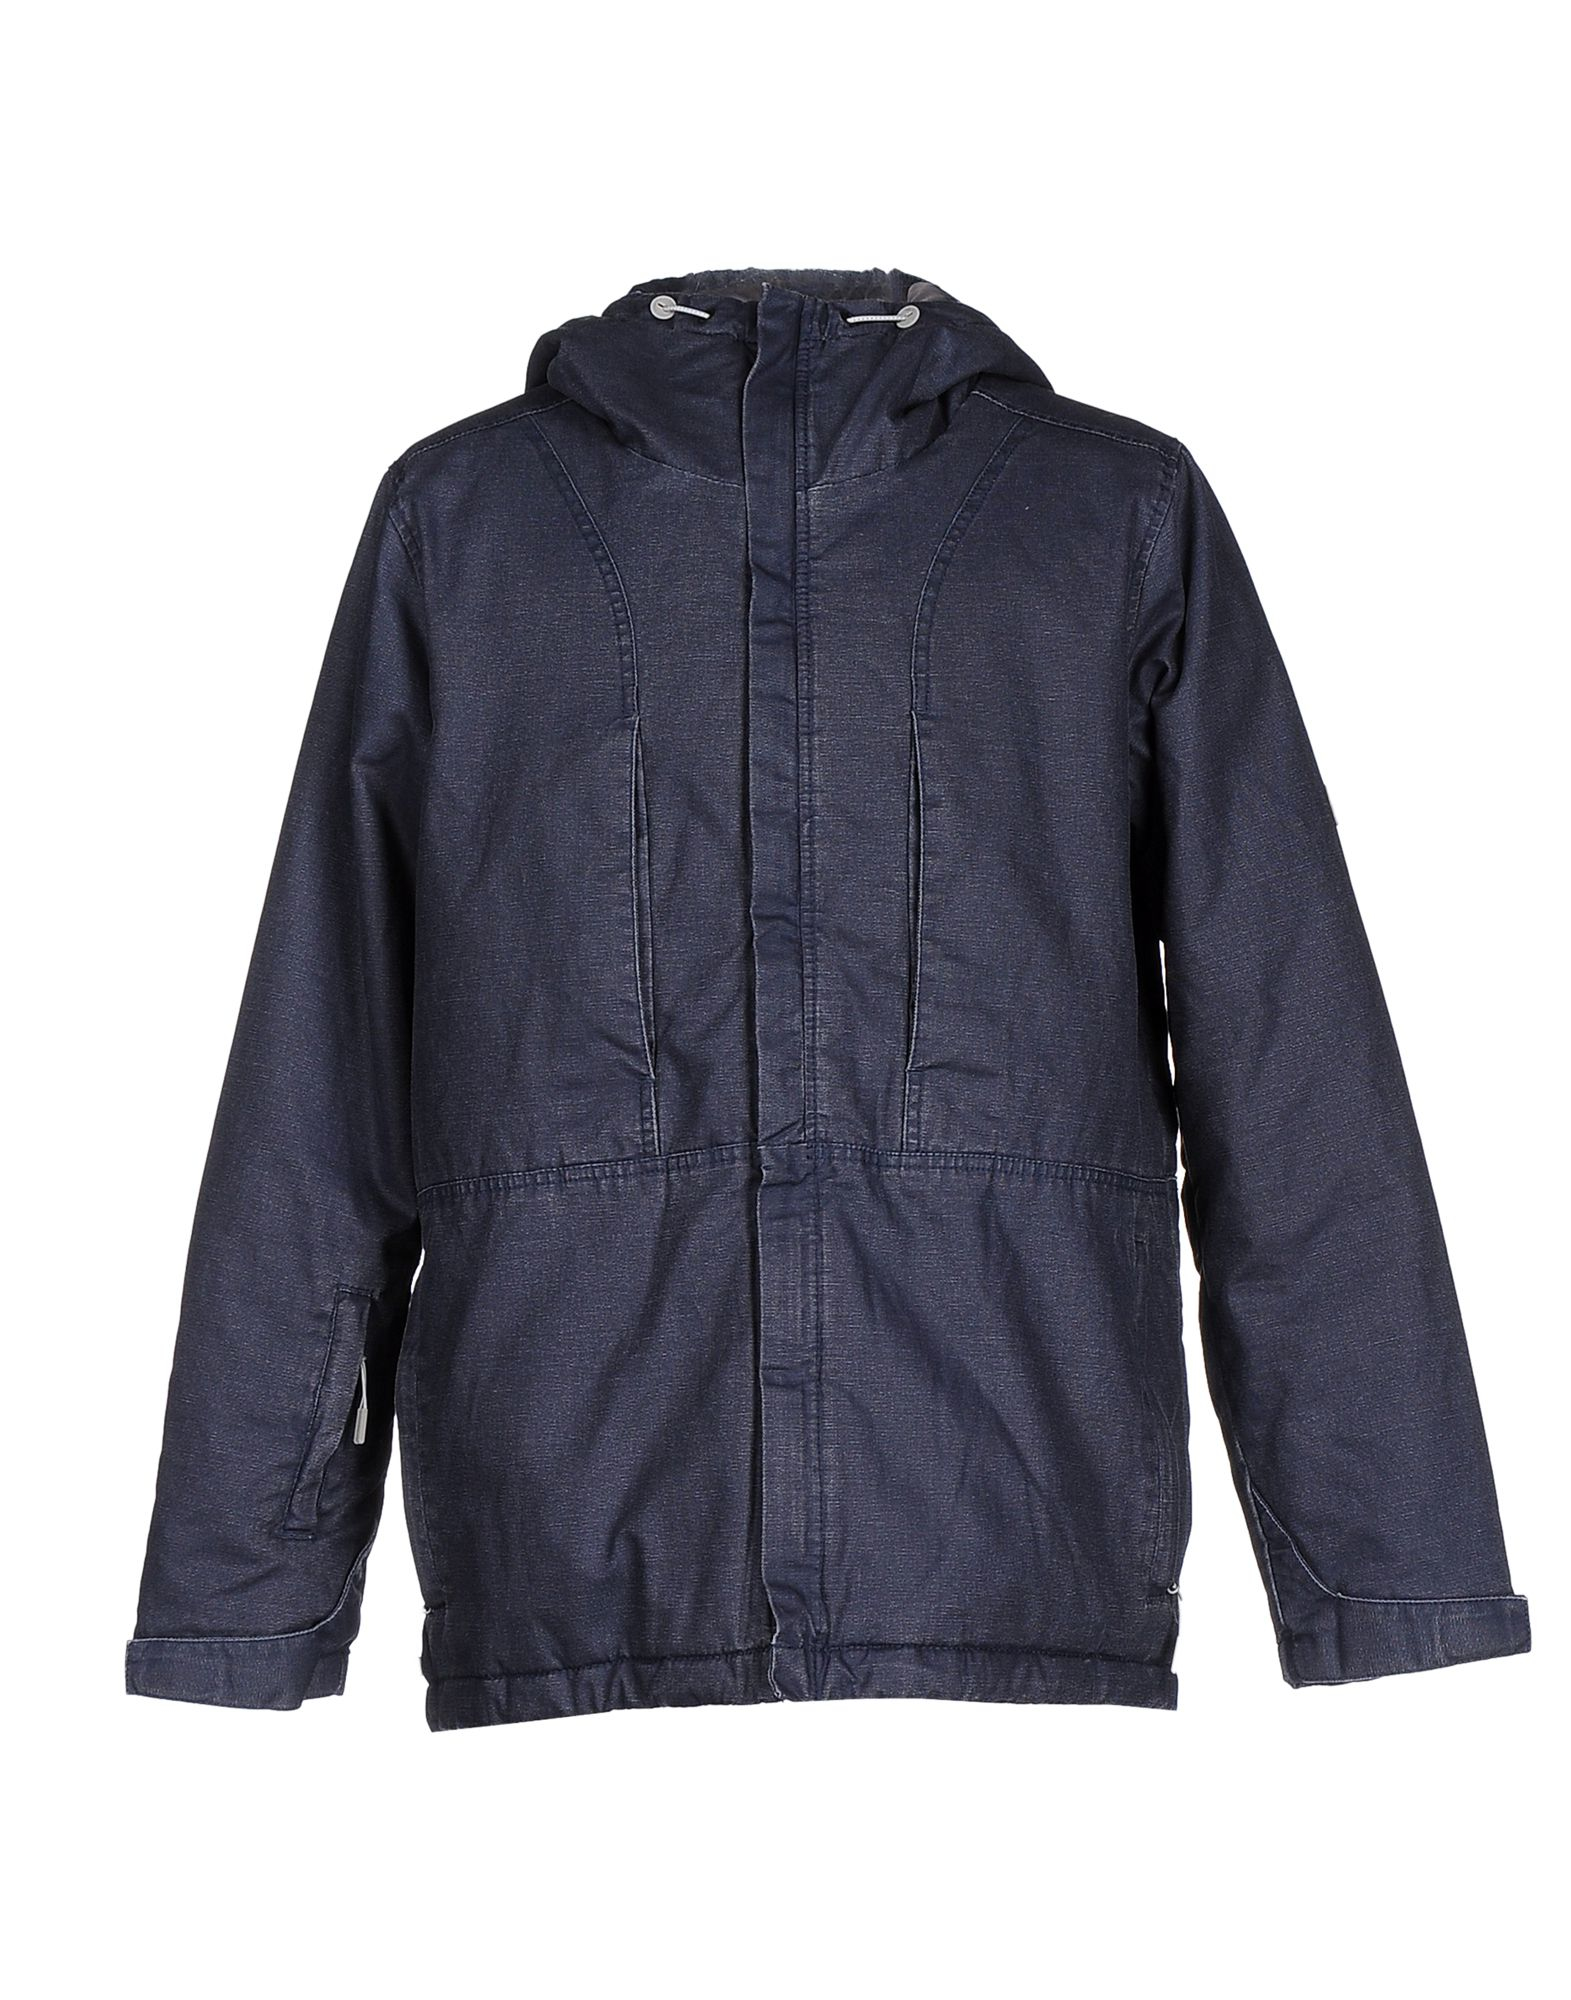 Bench jacket in blue for men lyst Bench jacket